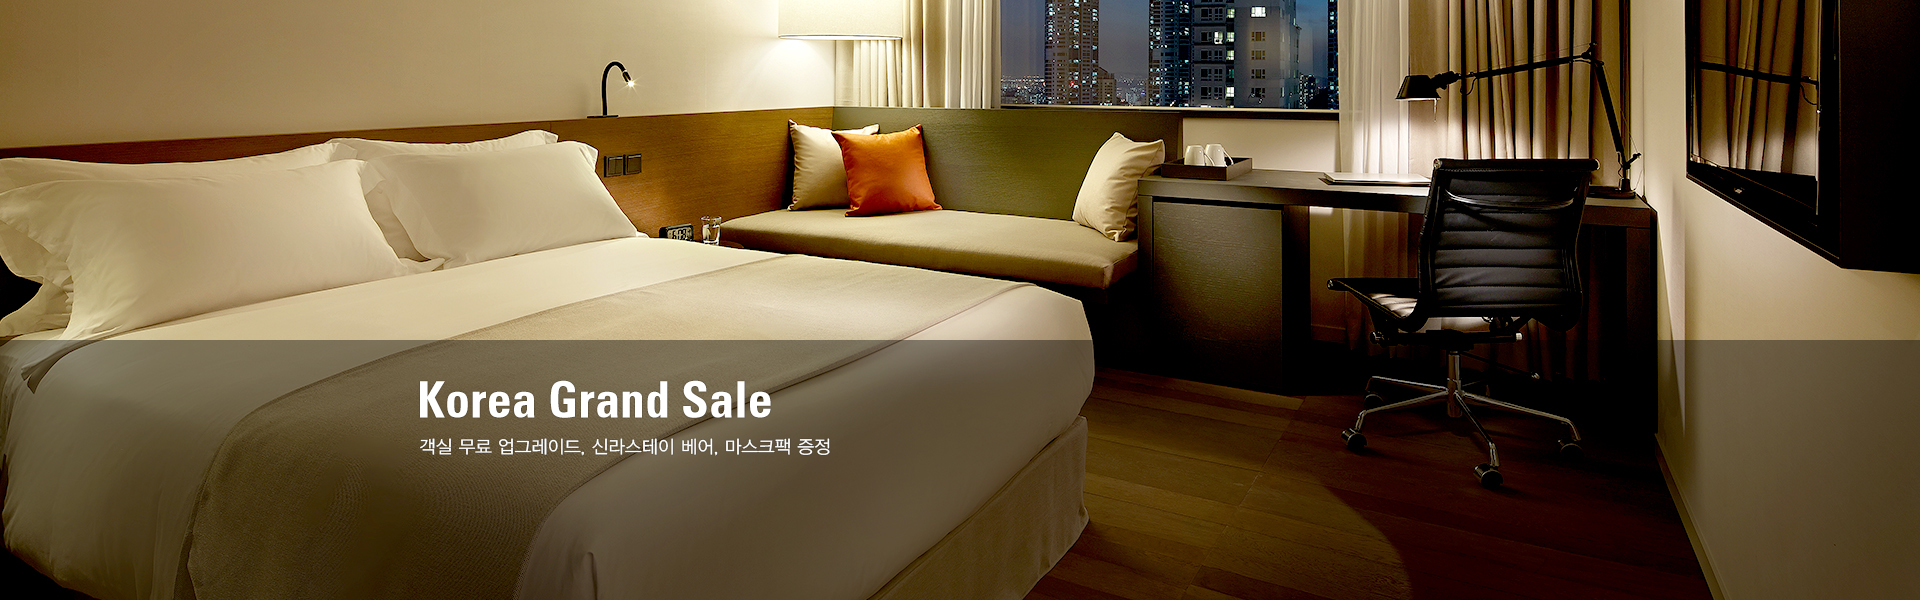 Korea Grand Sale